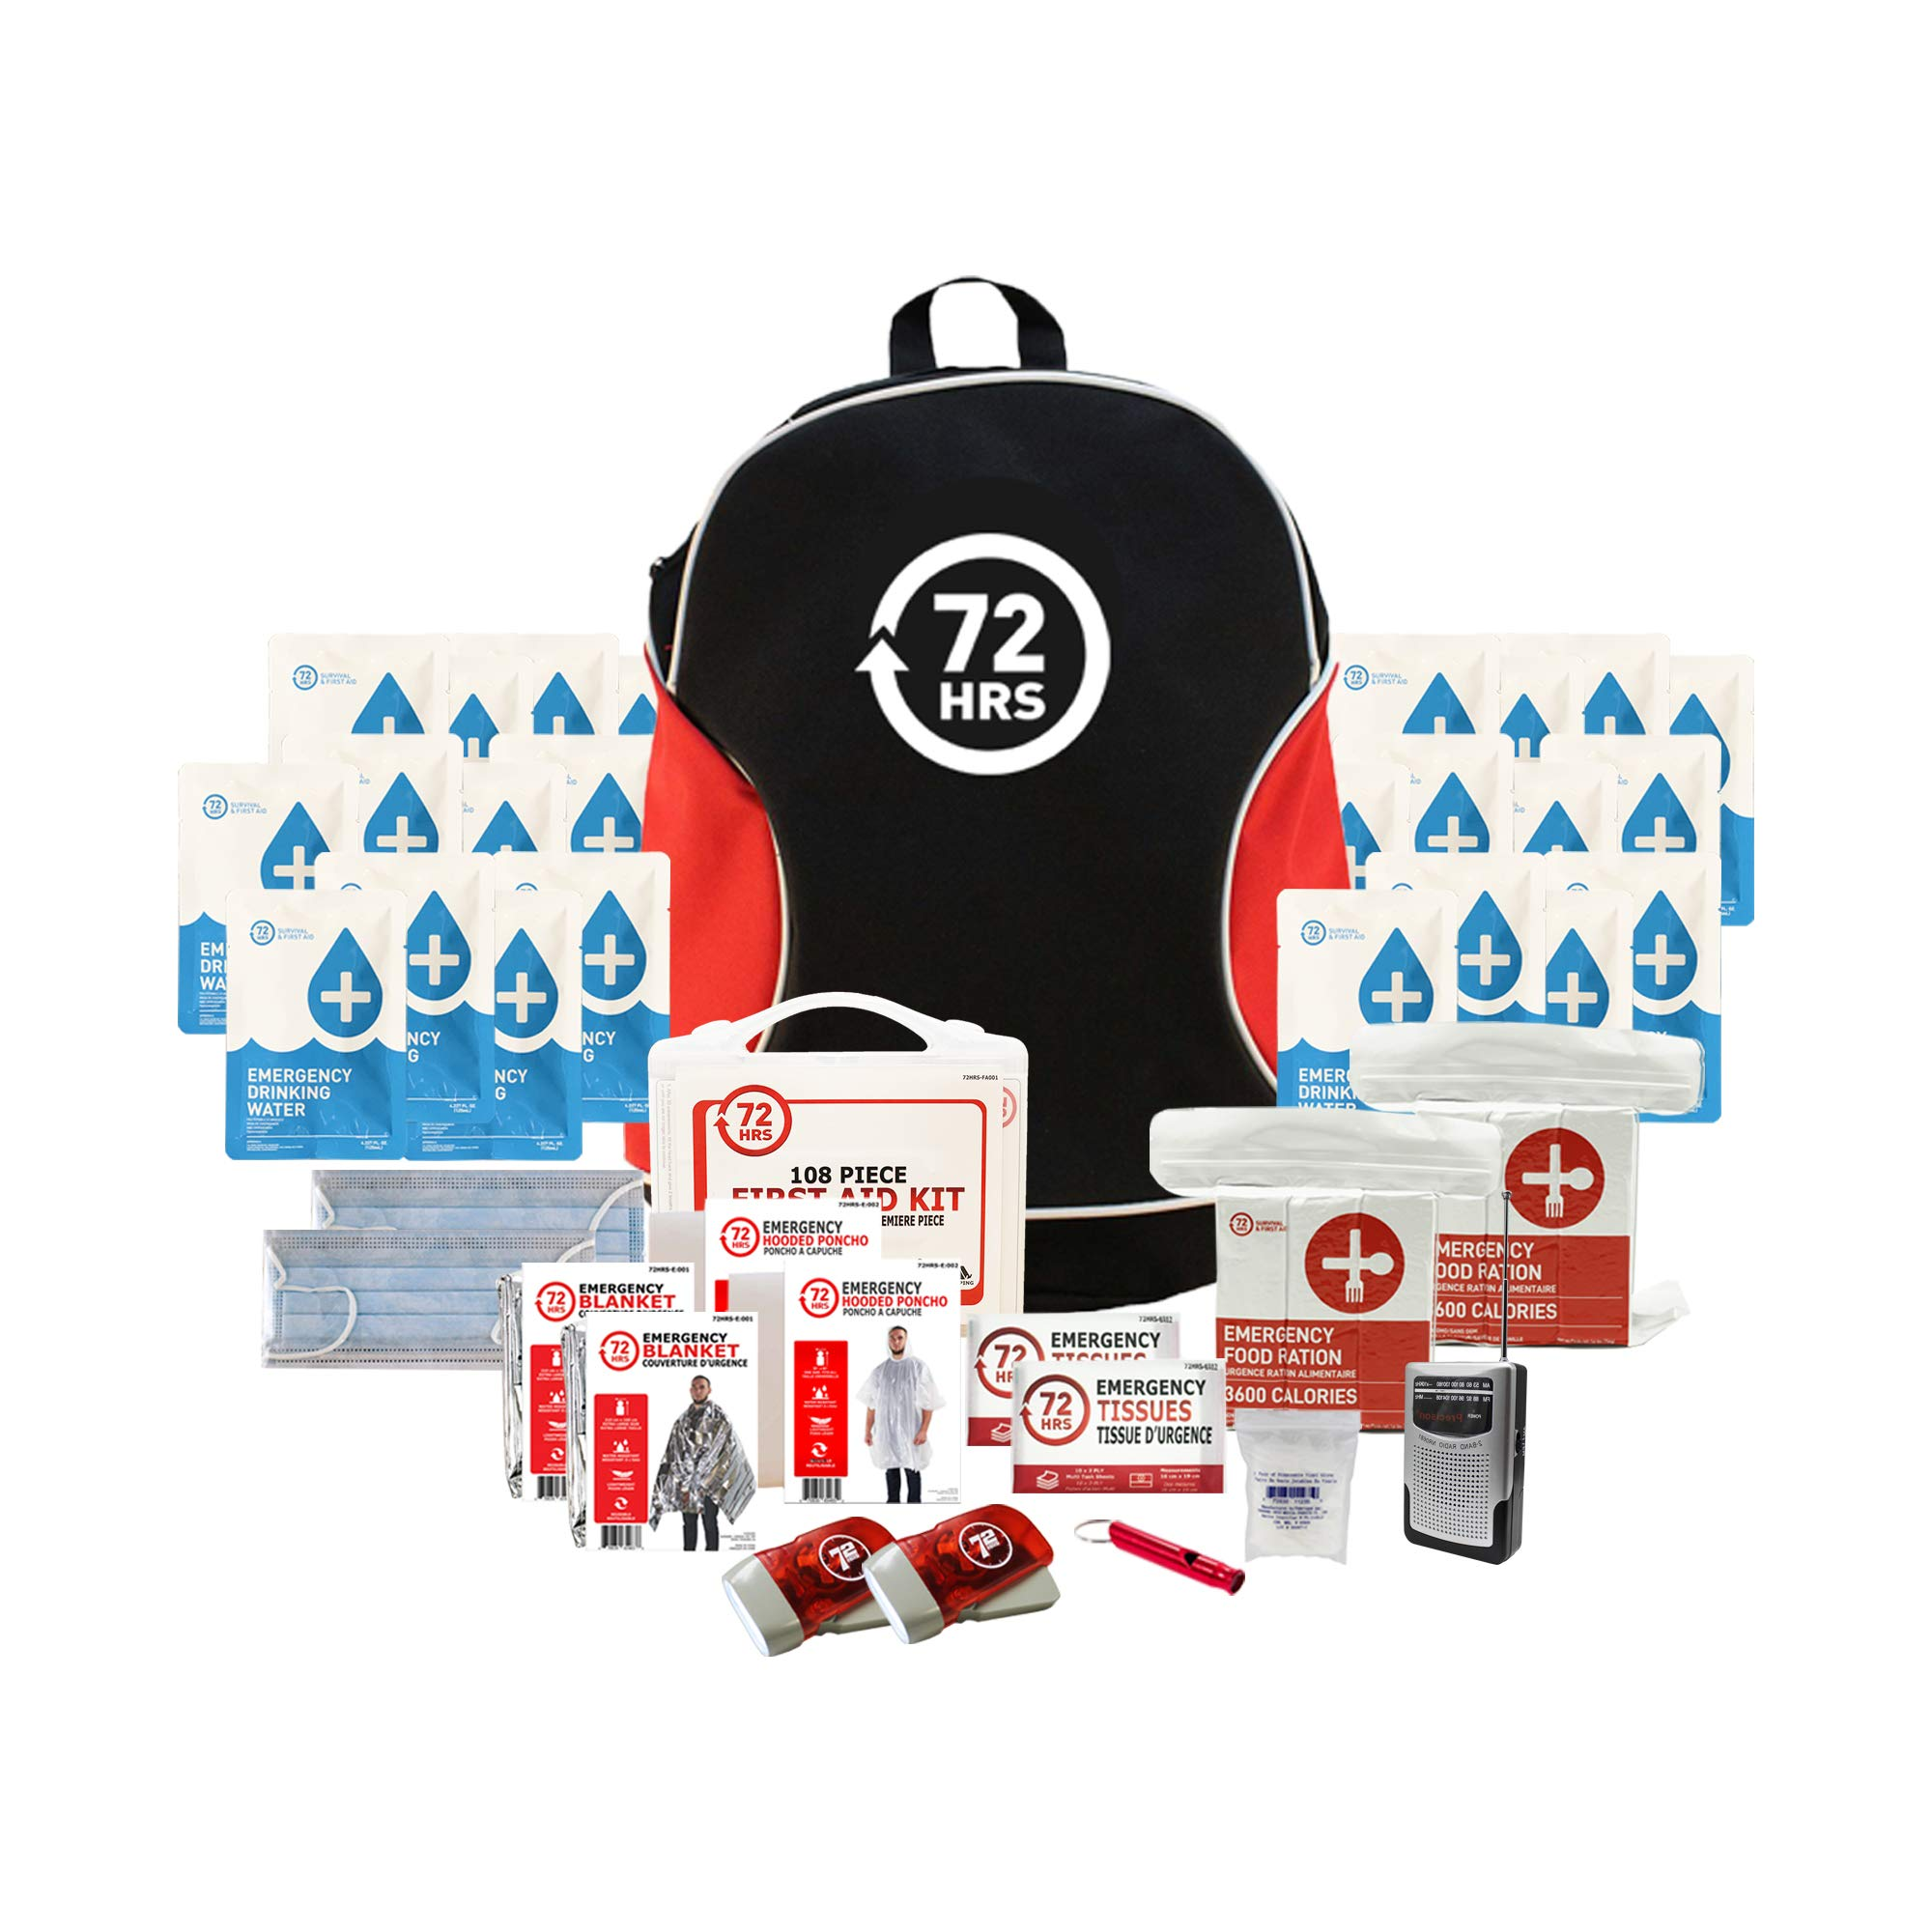 Earthquake Kit, Emergency Kit for 2 Persons - 72 Hours Backpack Essential Kit by 72HRS by 72HRS